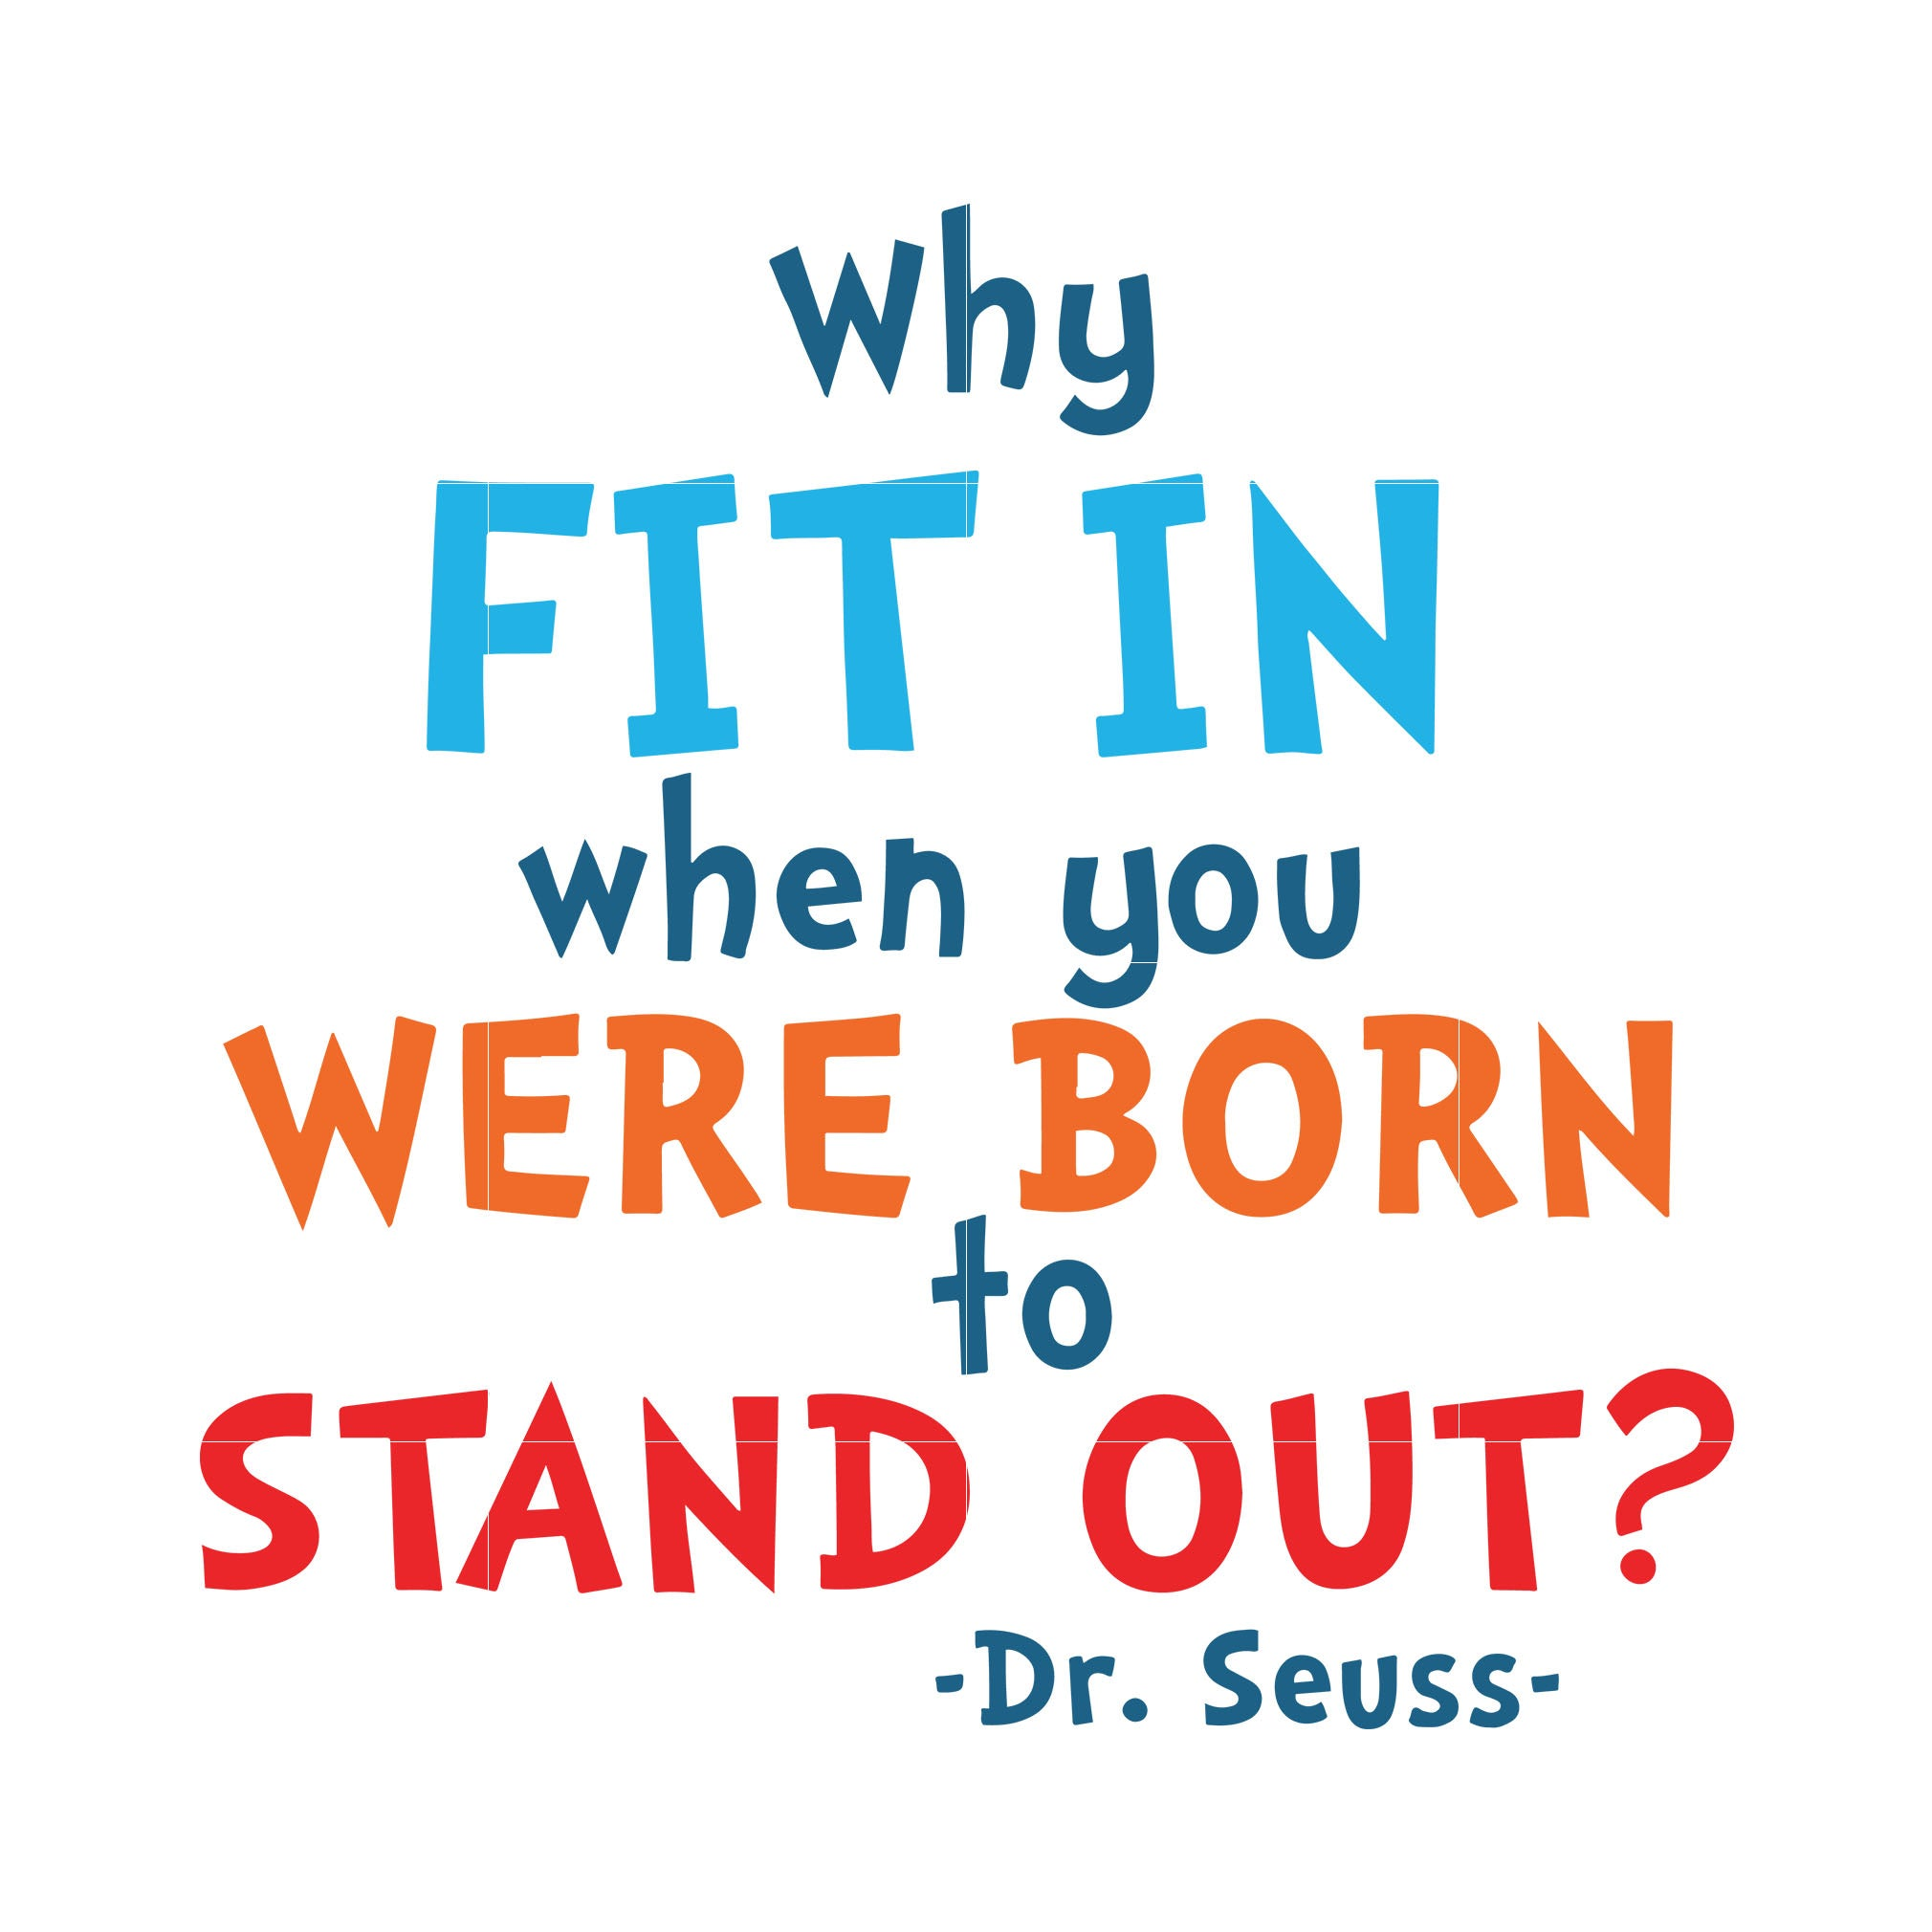 Why fit in when you were born to stand out, dr seuss svg, dr seuss quotes, digital file